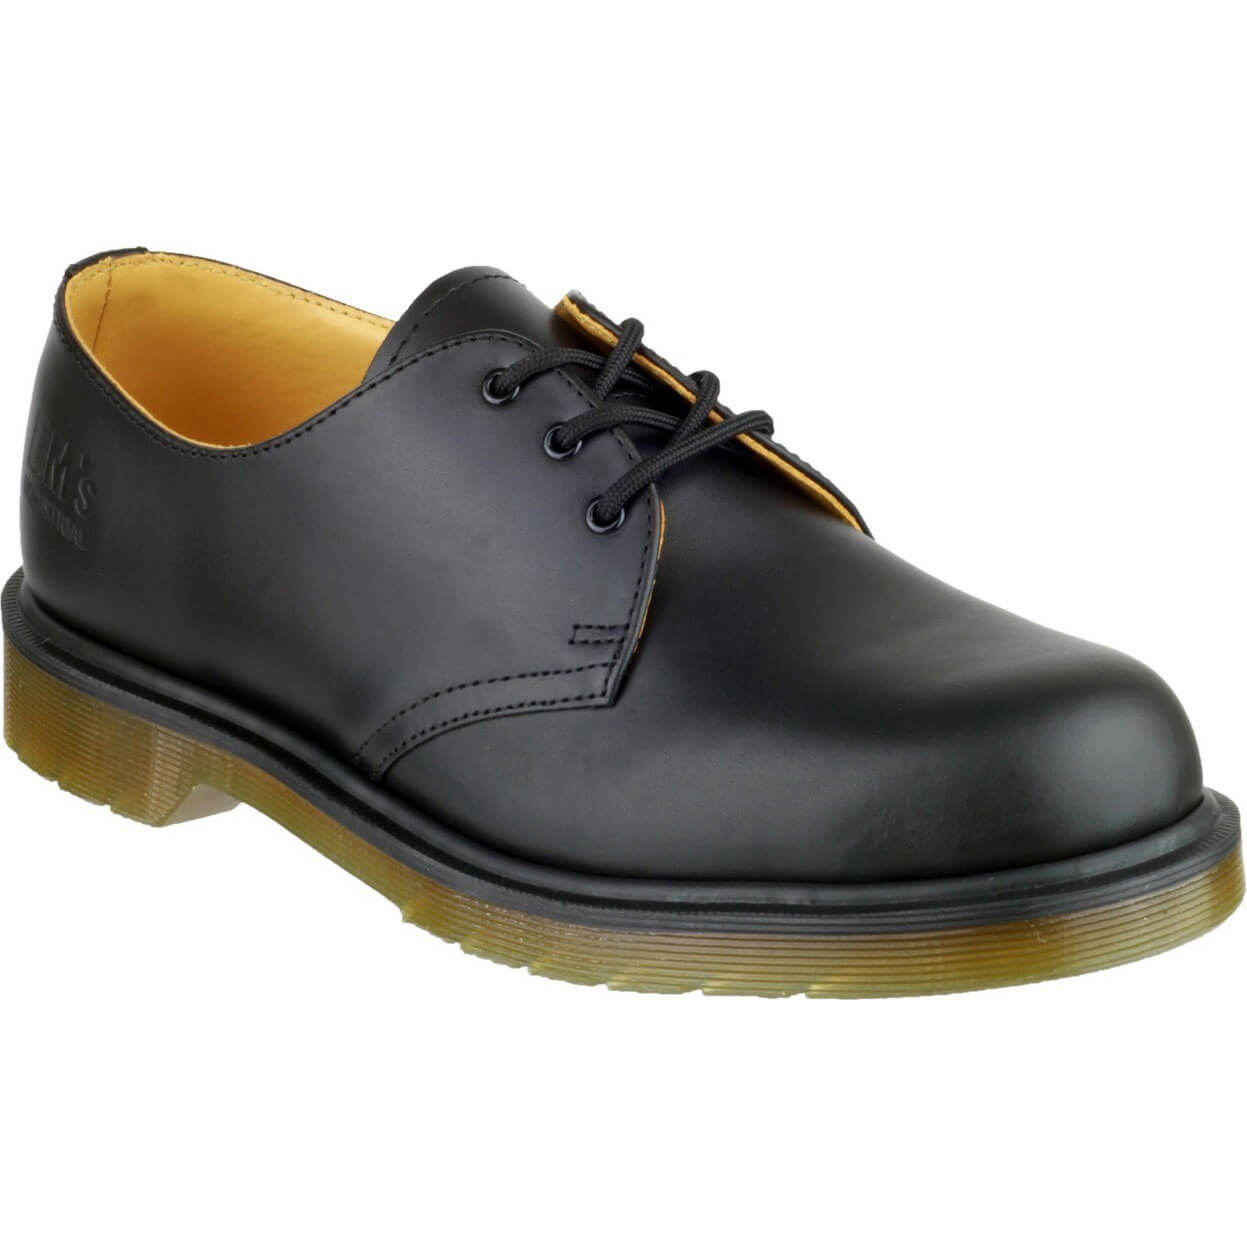 Image of Dr Martens B8249 Lace-Up Leather Shoe Black Size 4